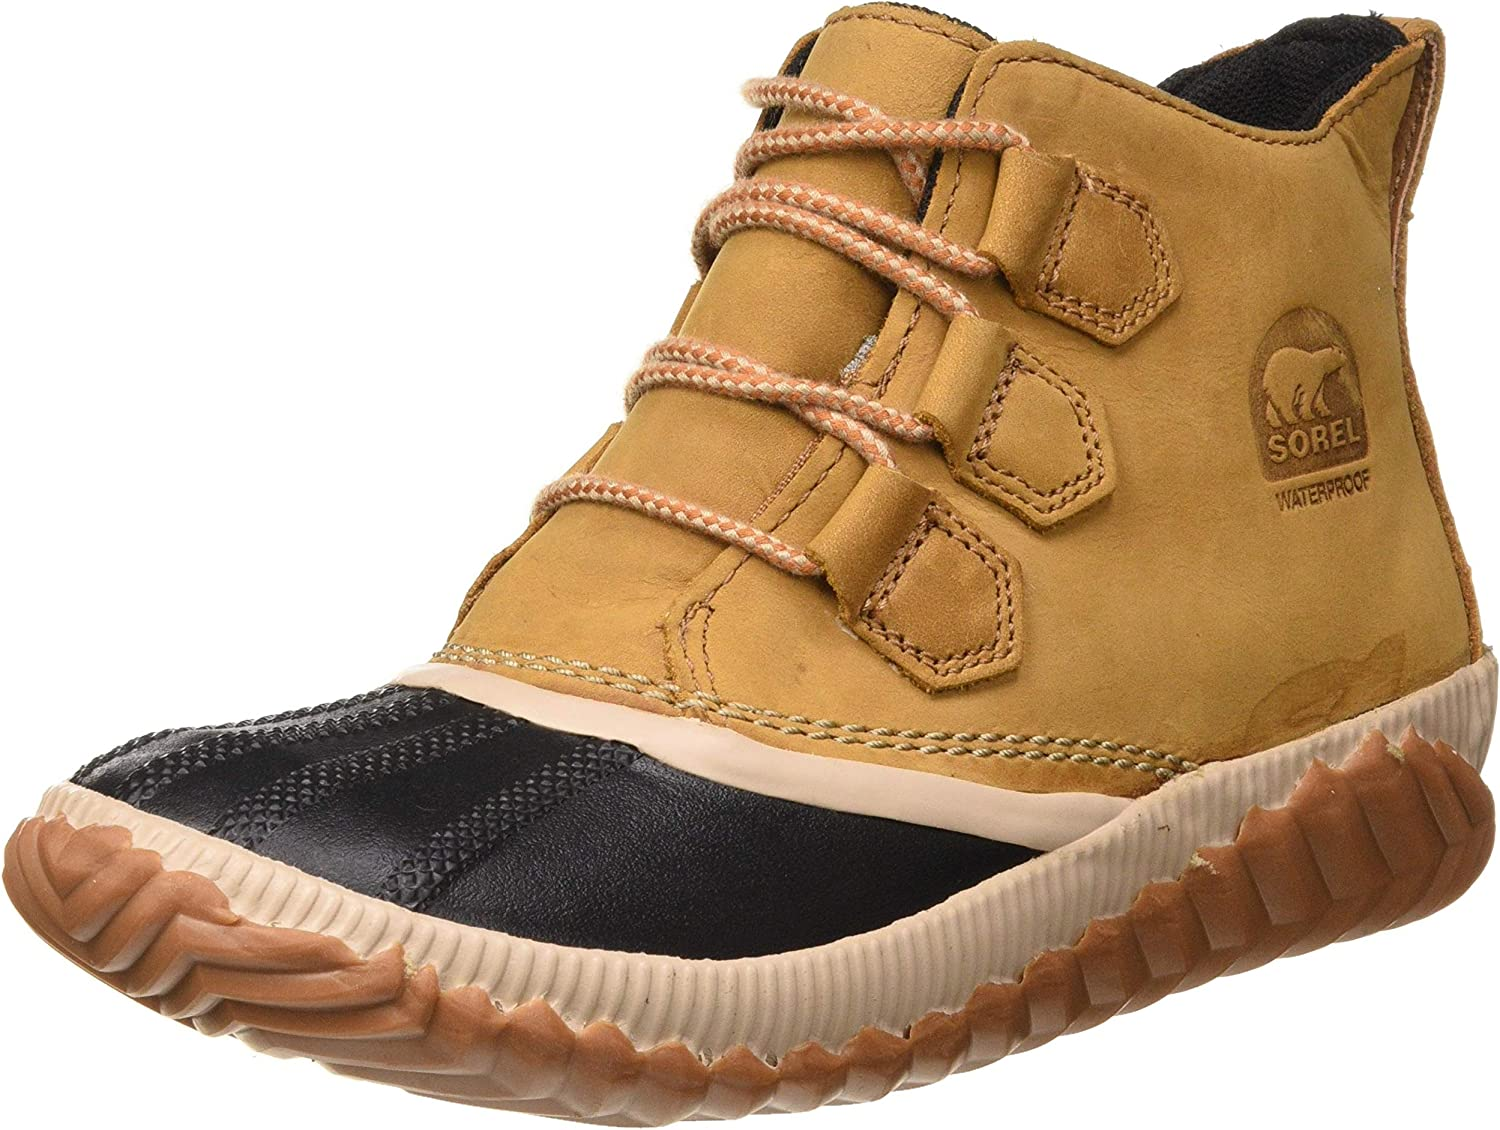 Sorel - Women's Out 'N About Plus, Waterproof Leather and Suede Duck Boot, Tonic Melon